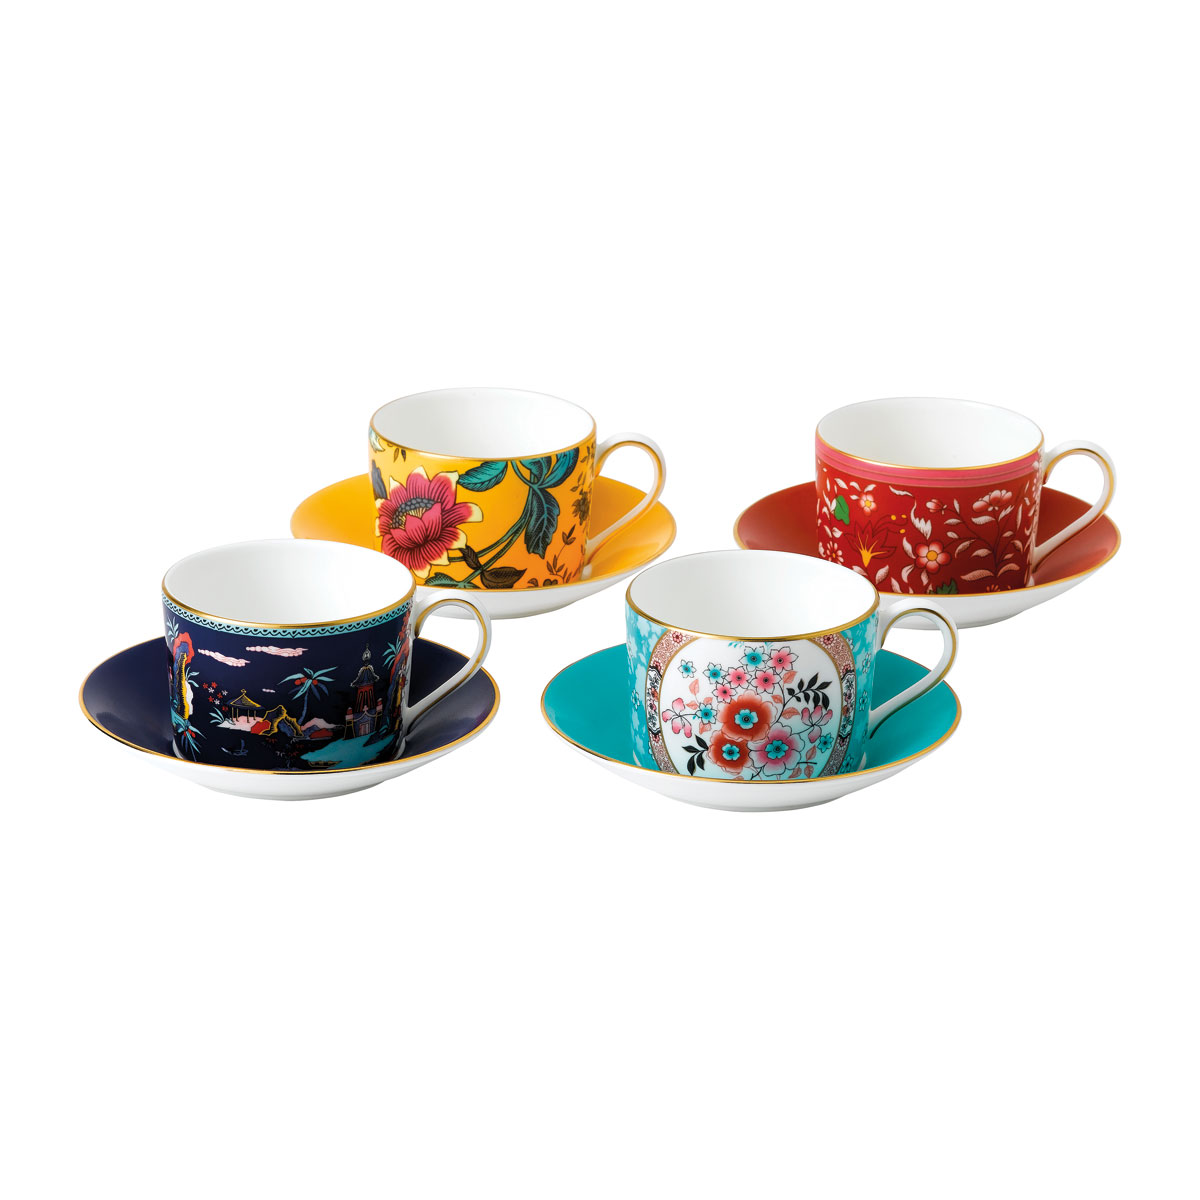 Wedgwood China Wonderlust Teacup and Saucer Set of 4, Blue Pagoda, Camellia, Crimson Jewel and Yellow Tonquin